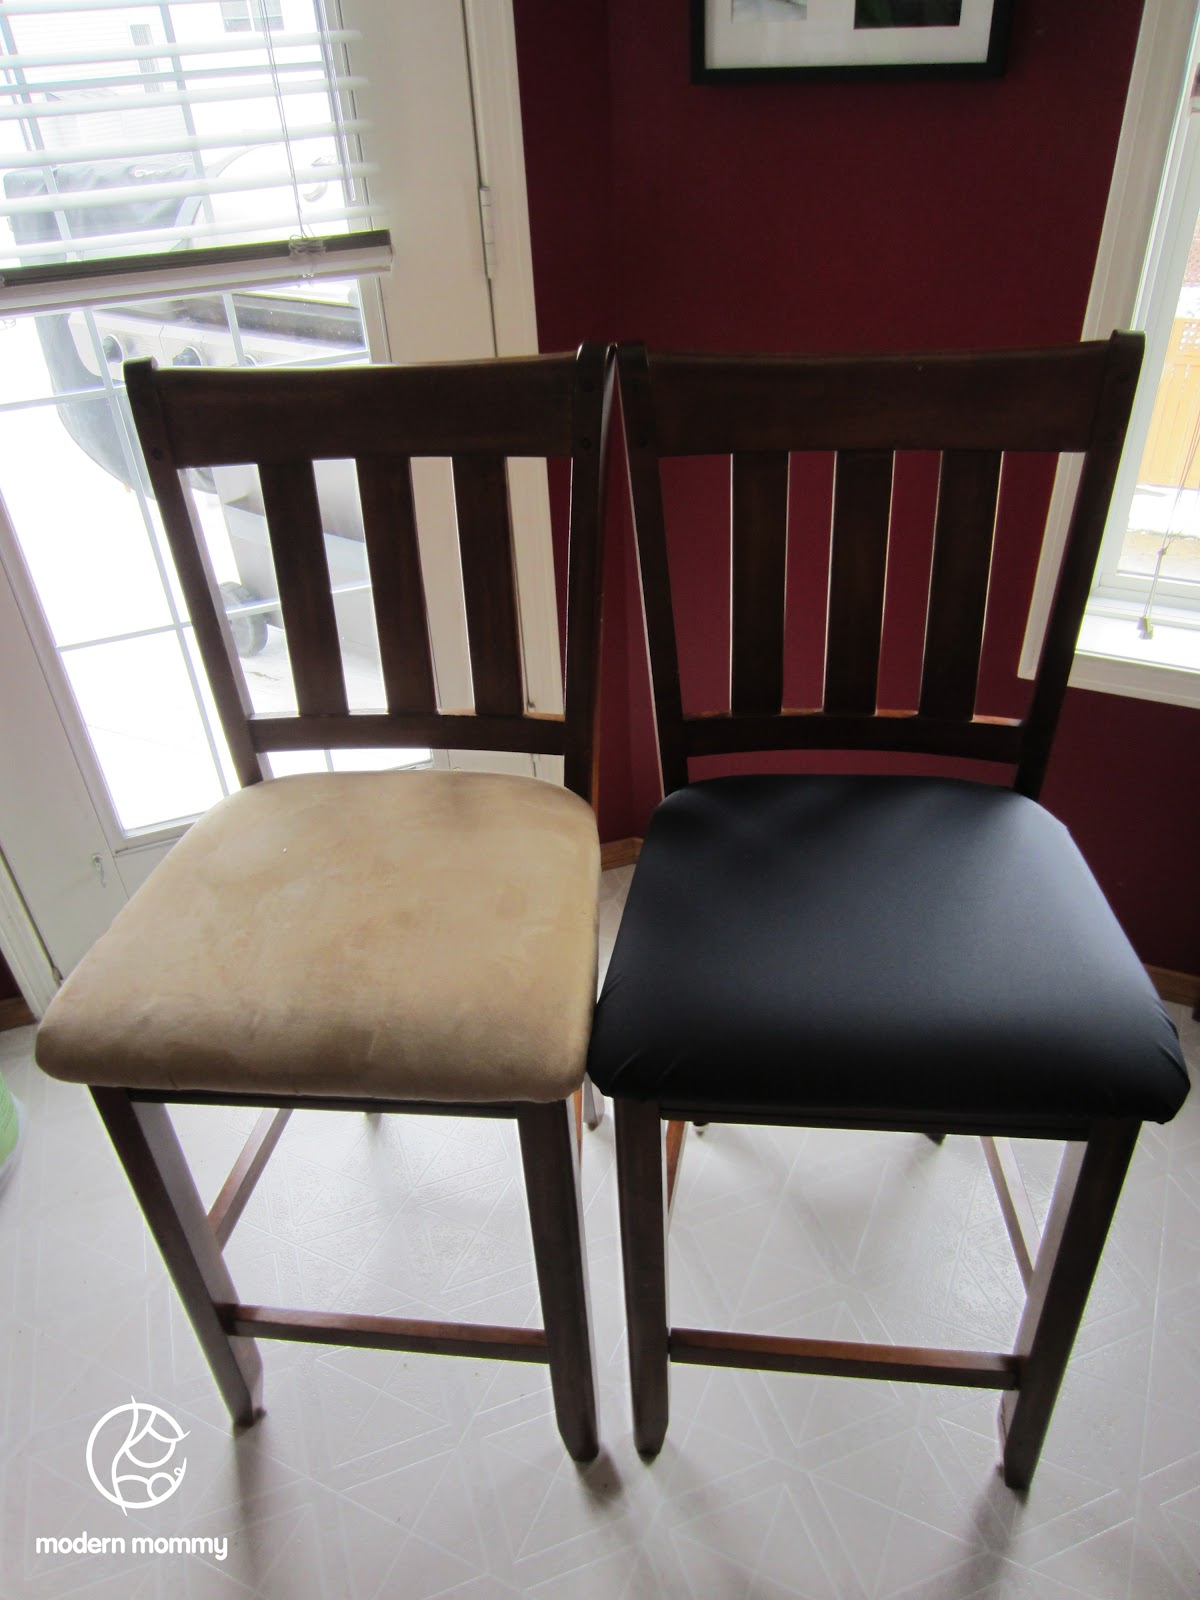 Superior Home DIY: Reupholstered Dining Chairs